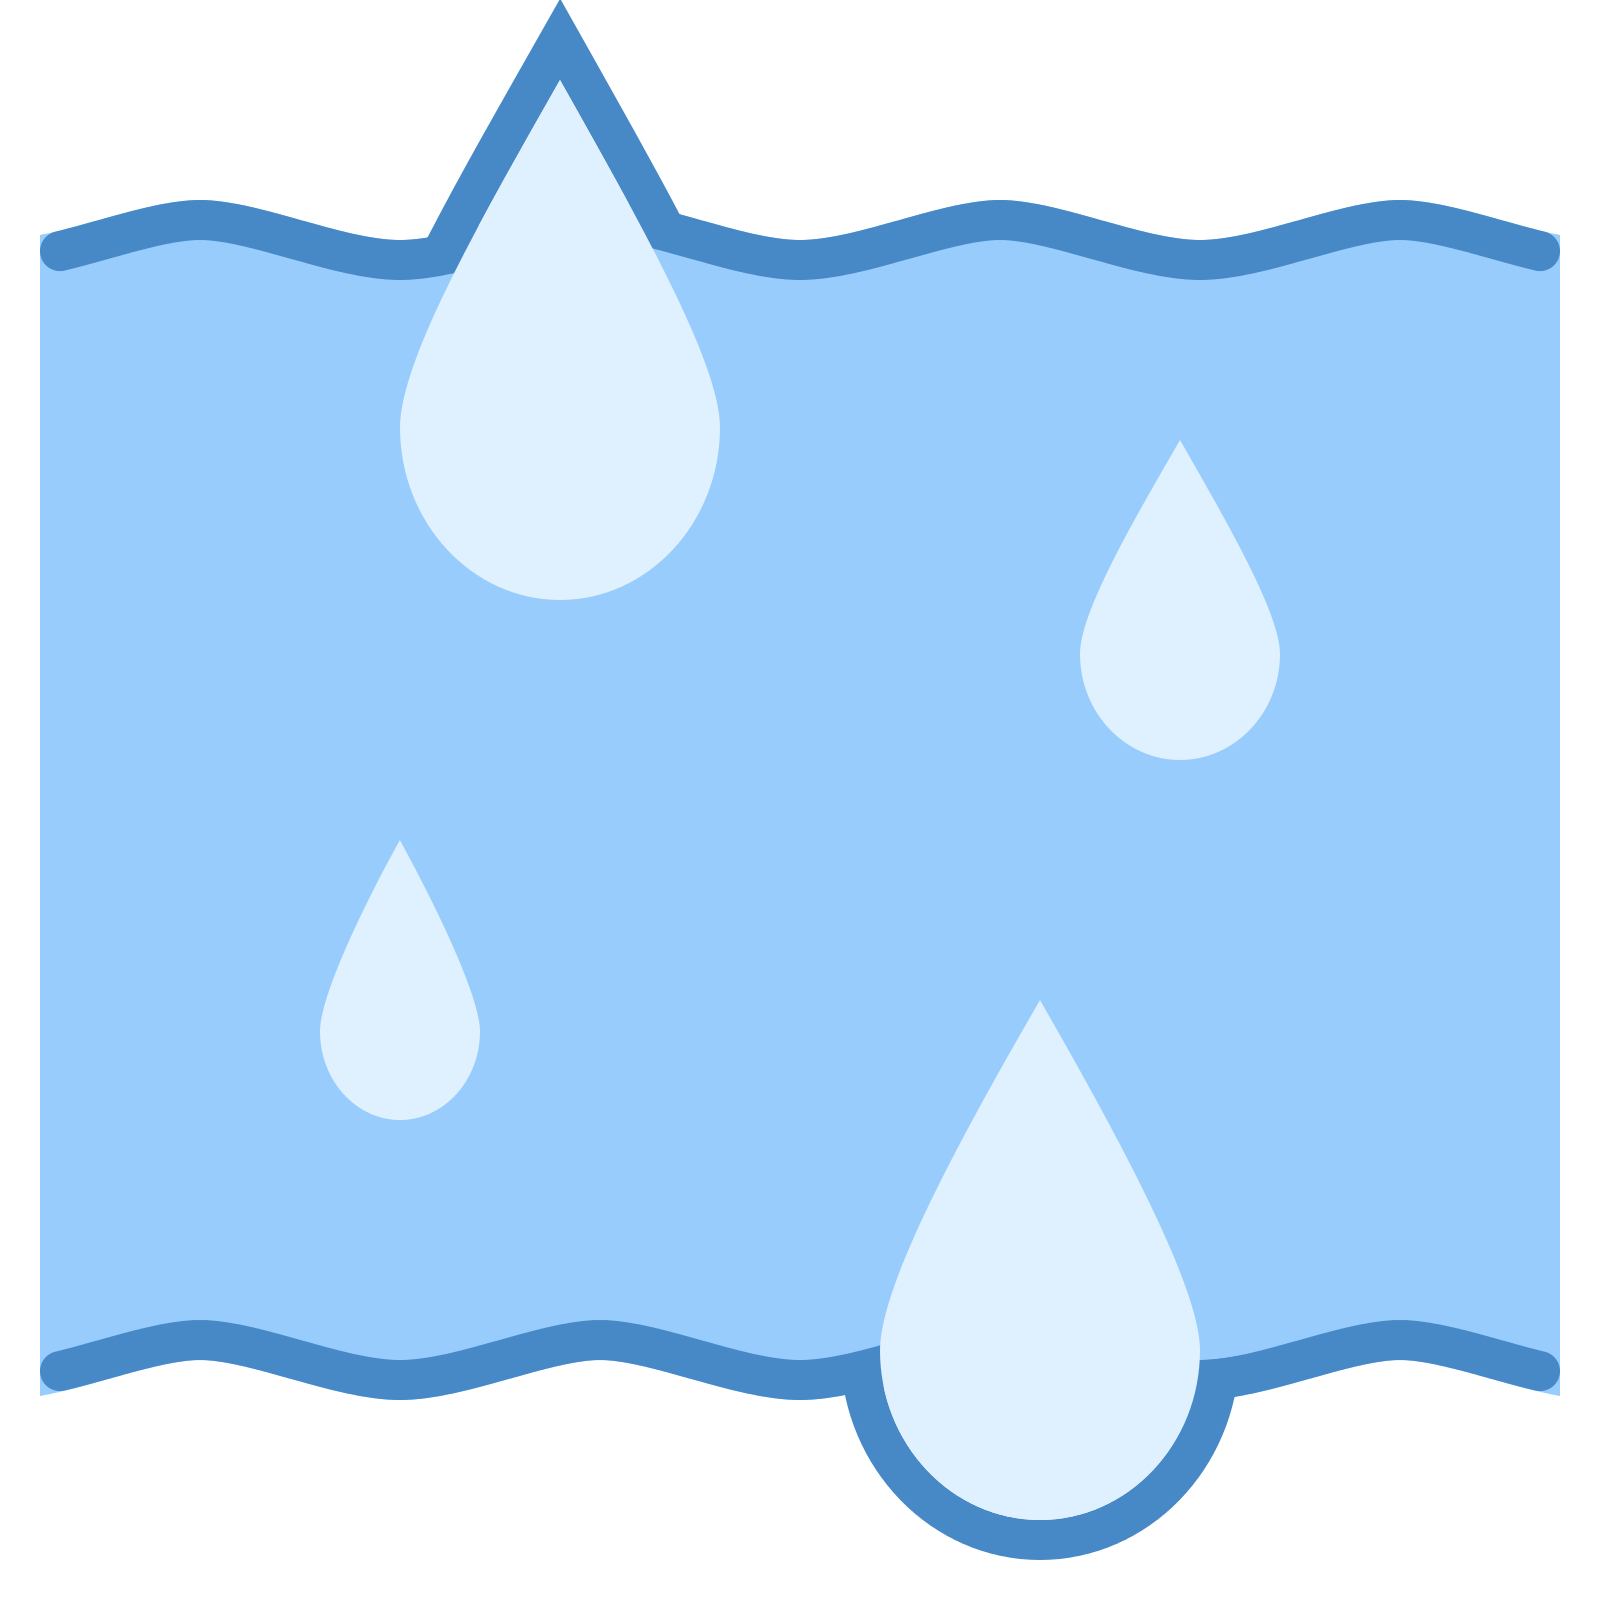 Liquid clipart moisture Icon Download Icon Free at